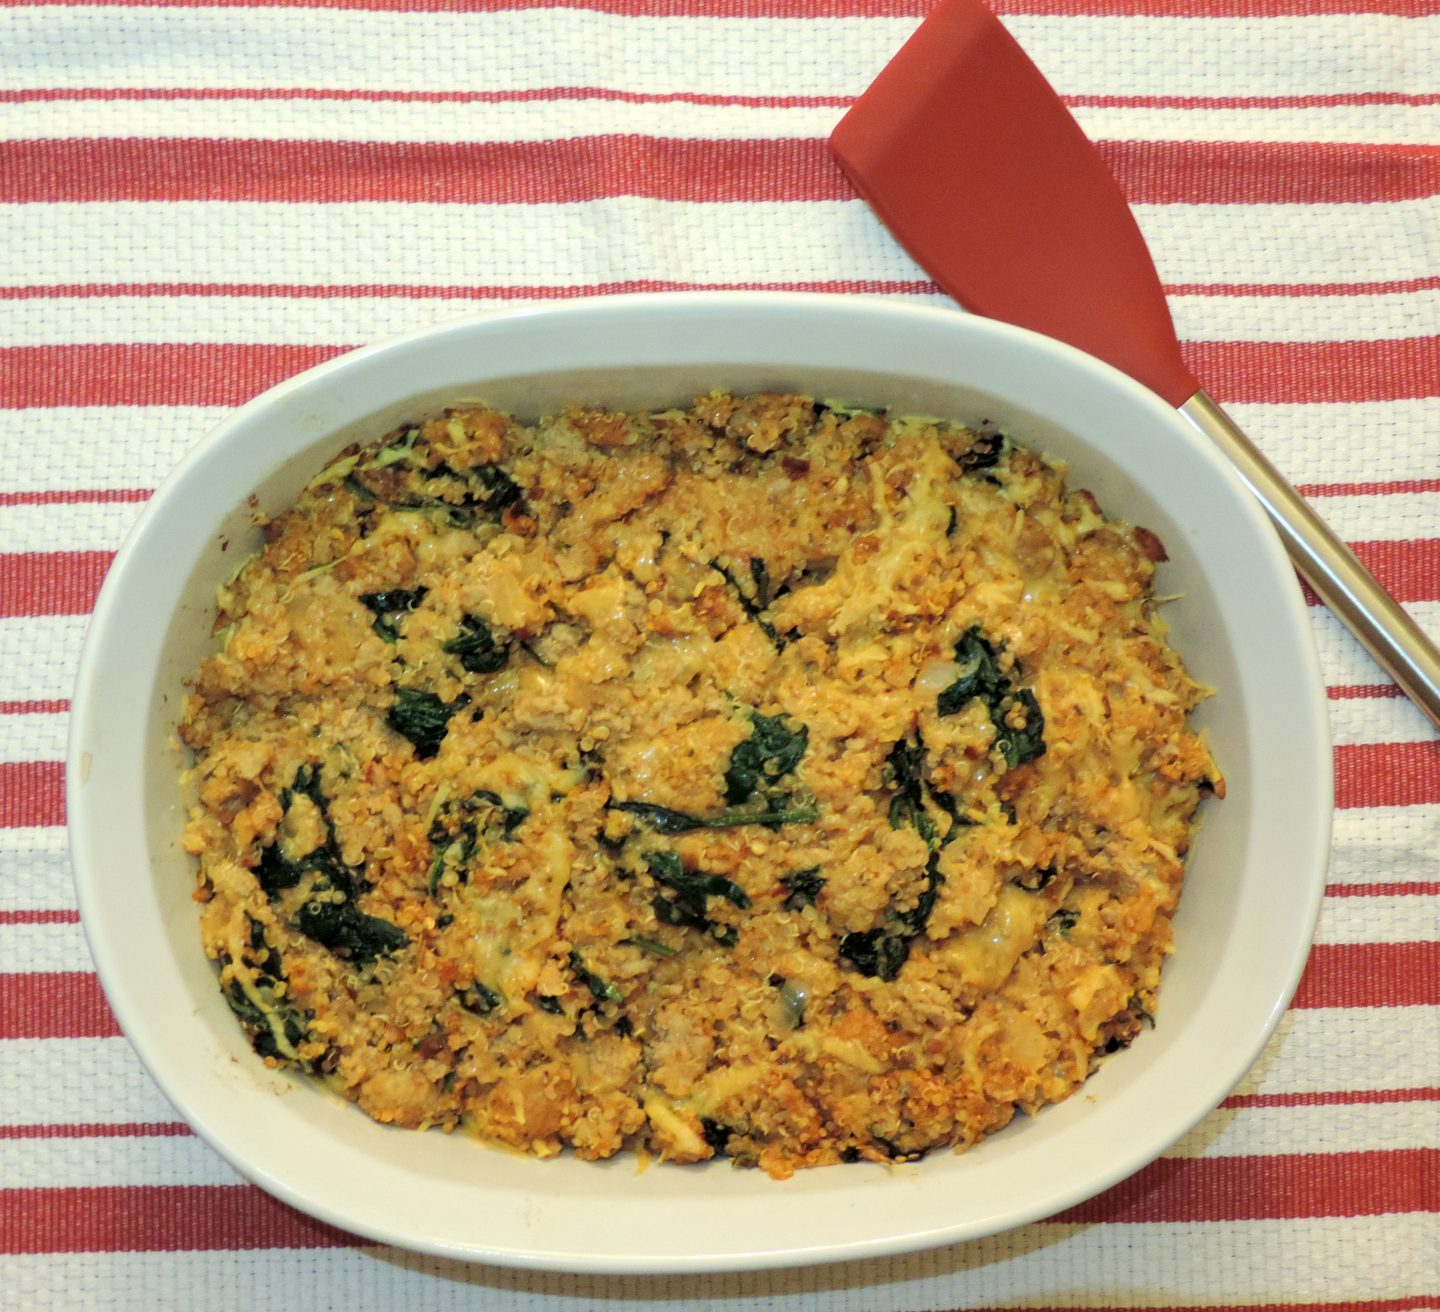 Turkey, Spinach and Quinoa Casserole